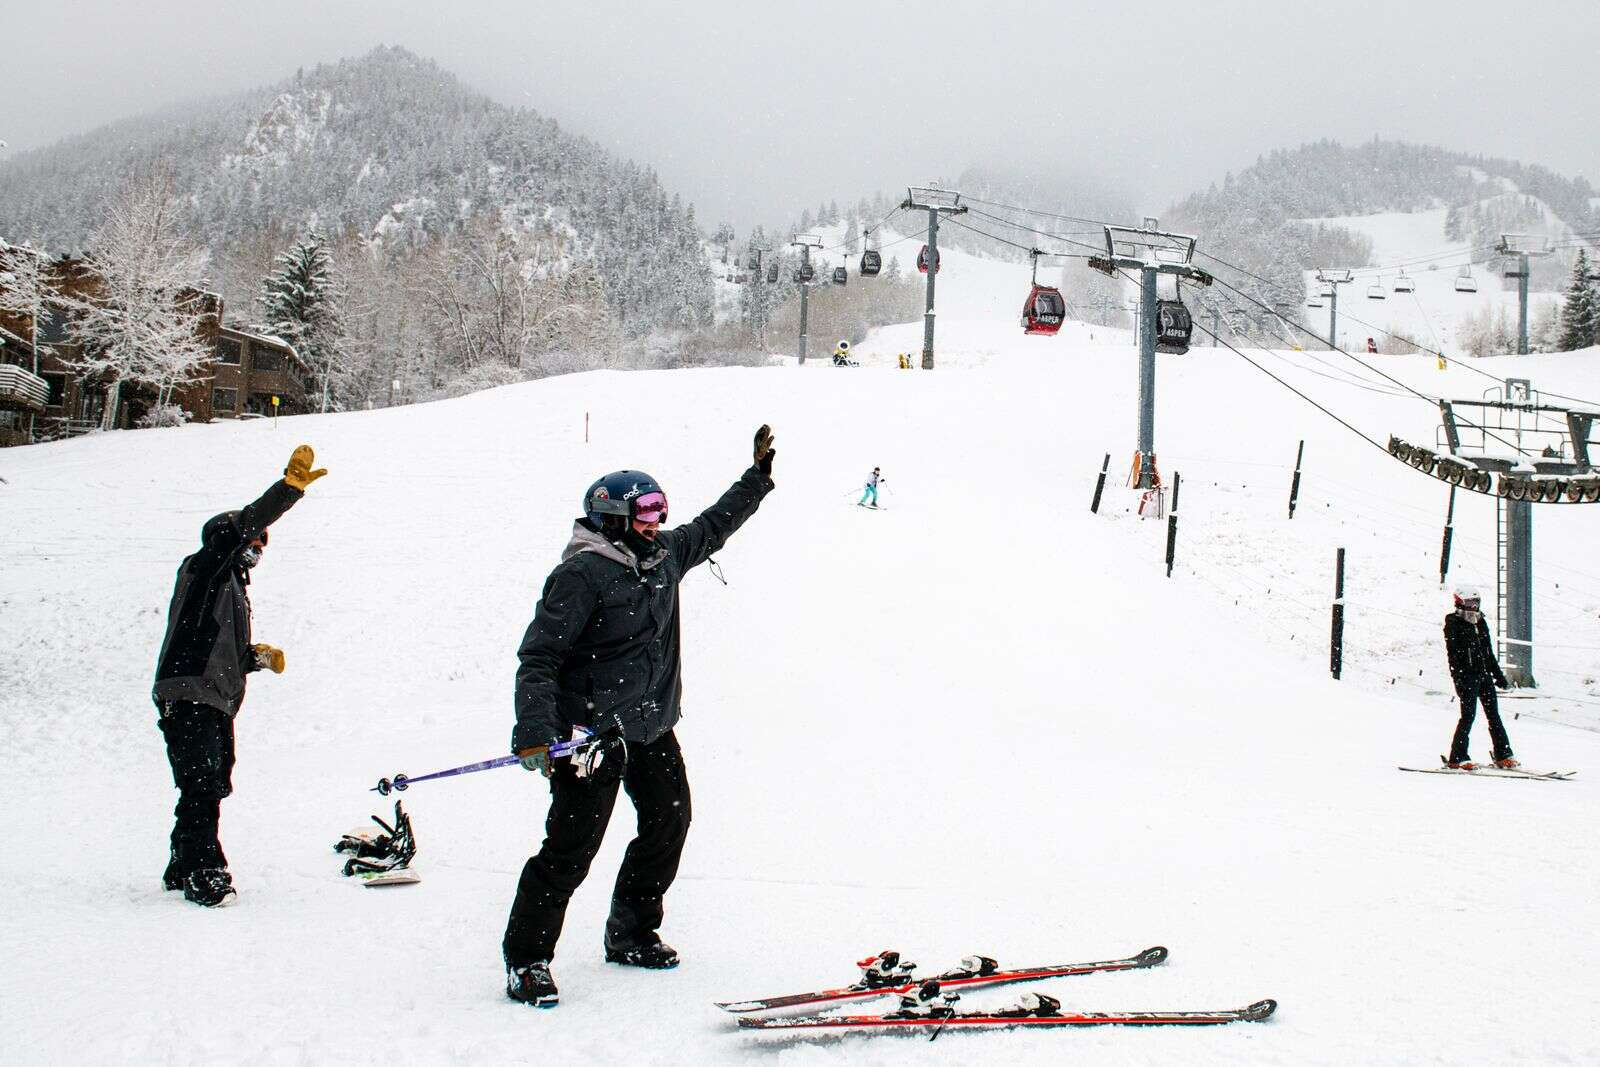 Aspen Skiing Company employees wave to friends at the base of Aspen Mountain the day before the official opening of the mountains in Aspen on Tuesday, Nov. 24, 2020. Aspen Skiing Company employees and family had the opportunity to ski Aspen and Snowmass after a fresh snowfall. (Kelsey Brunner/The Aspen Times)